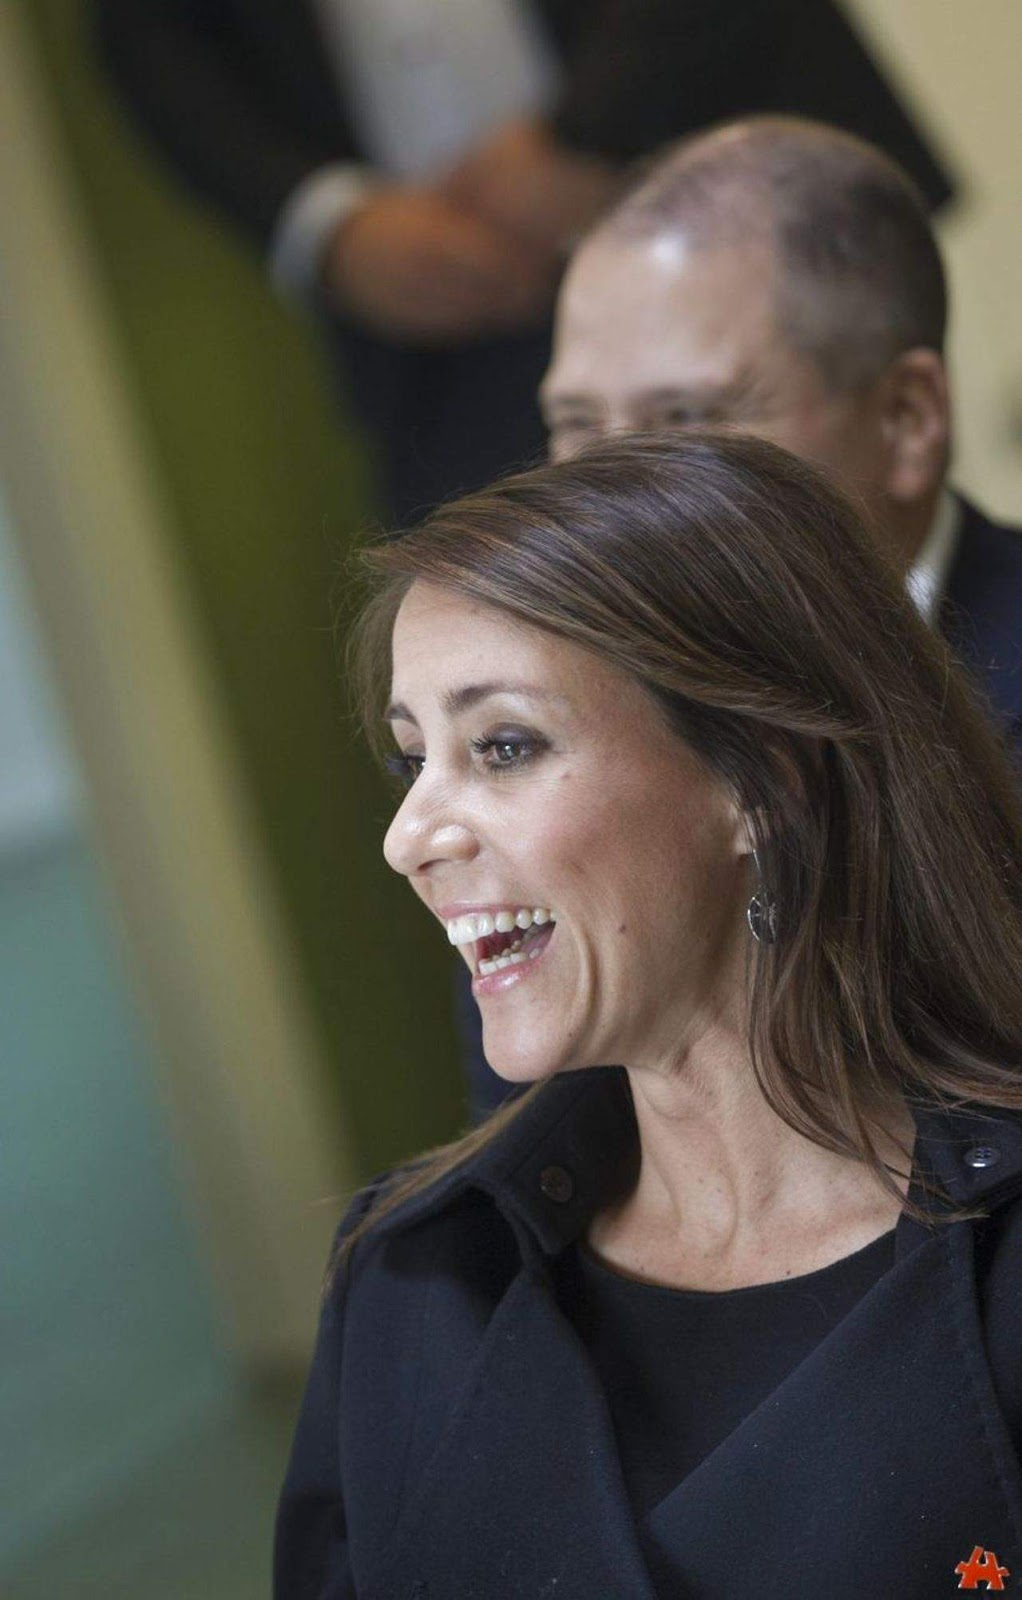 Princess Marie came to Hinnerup, a small town in Jutland